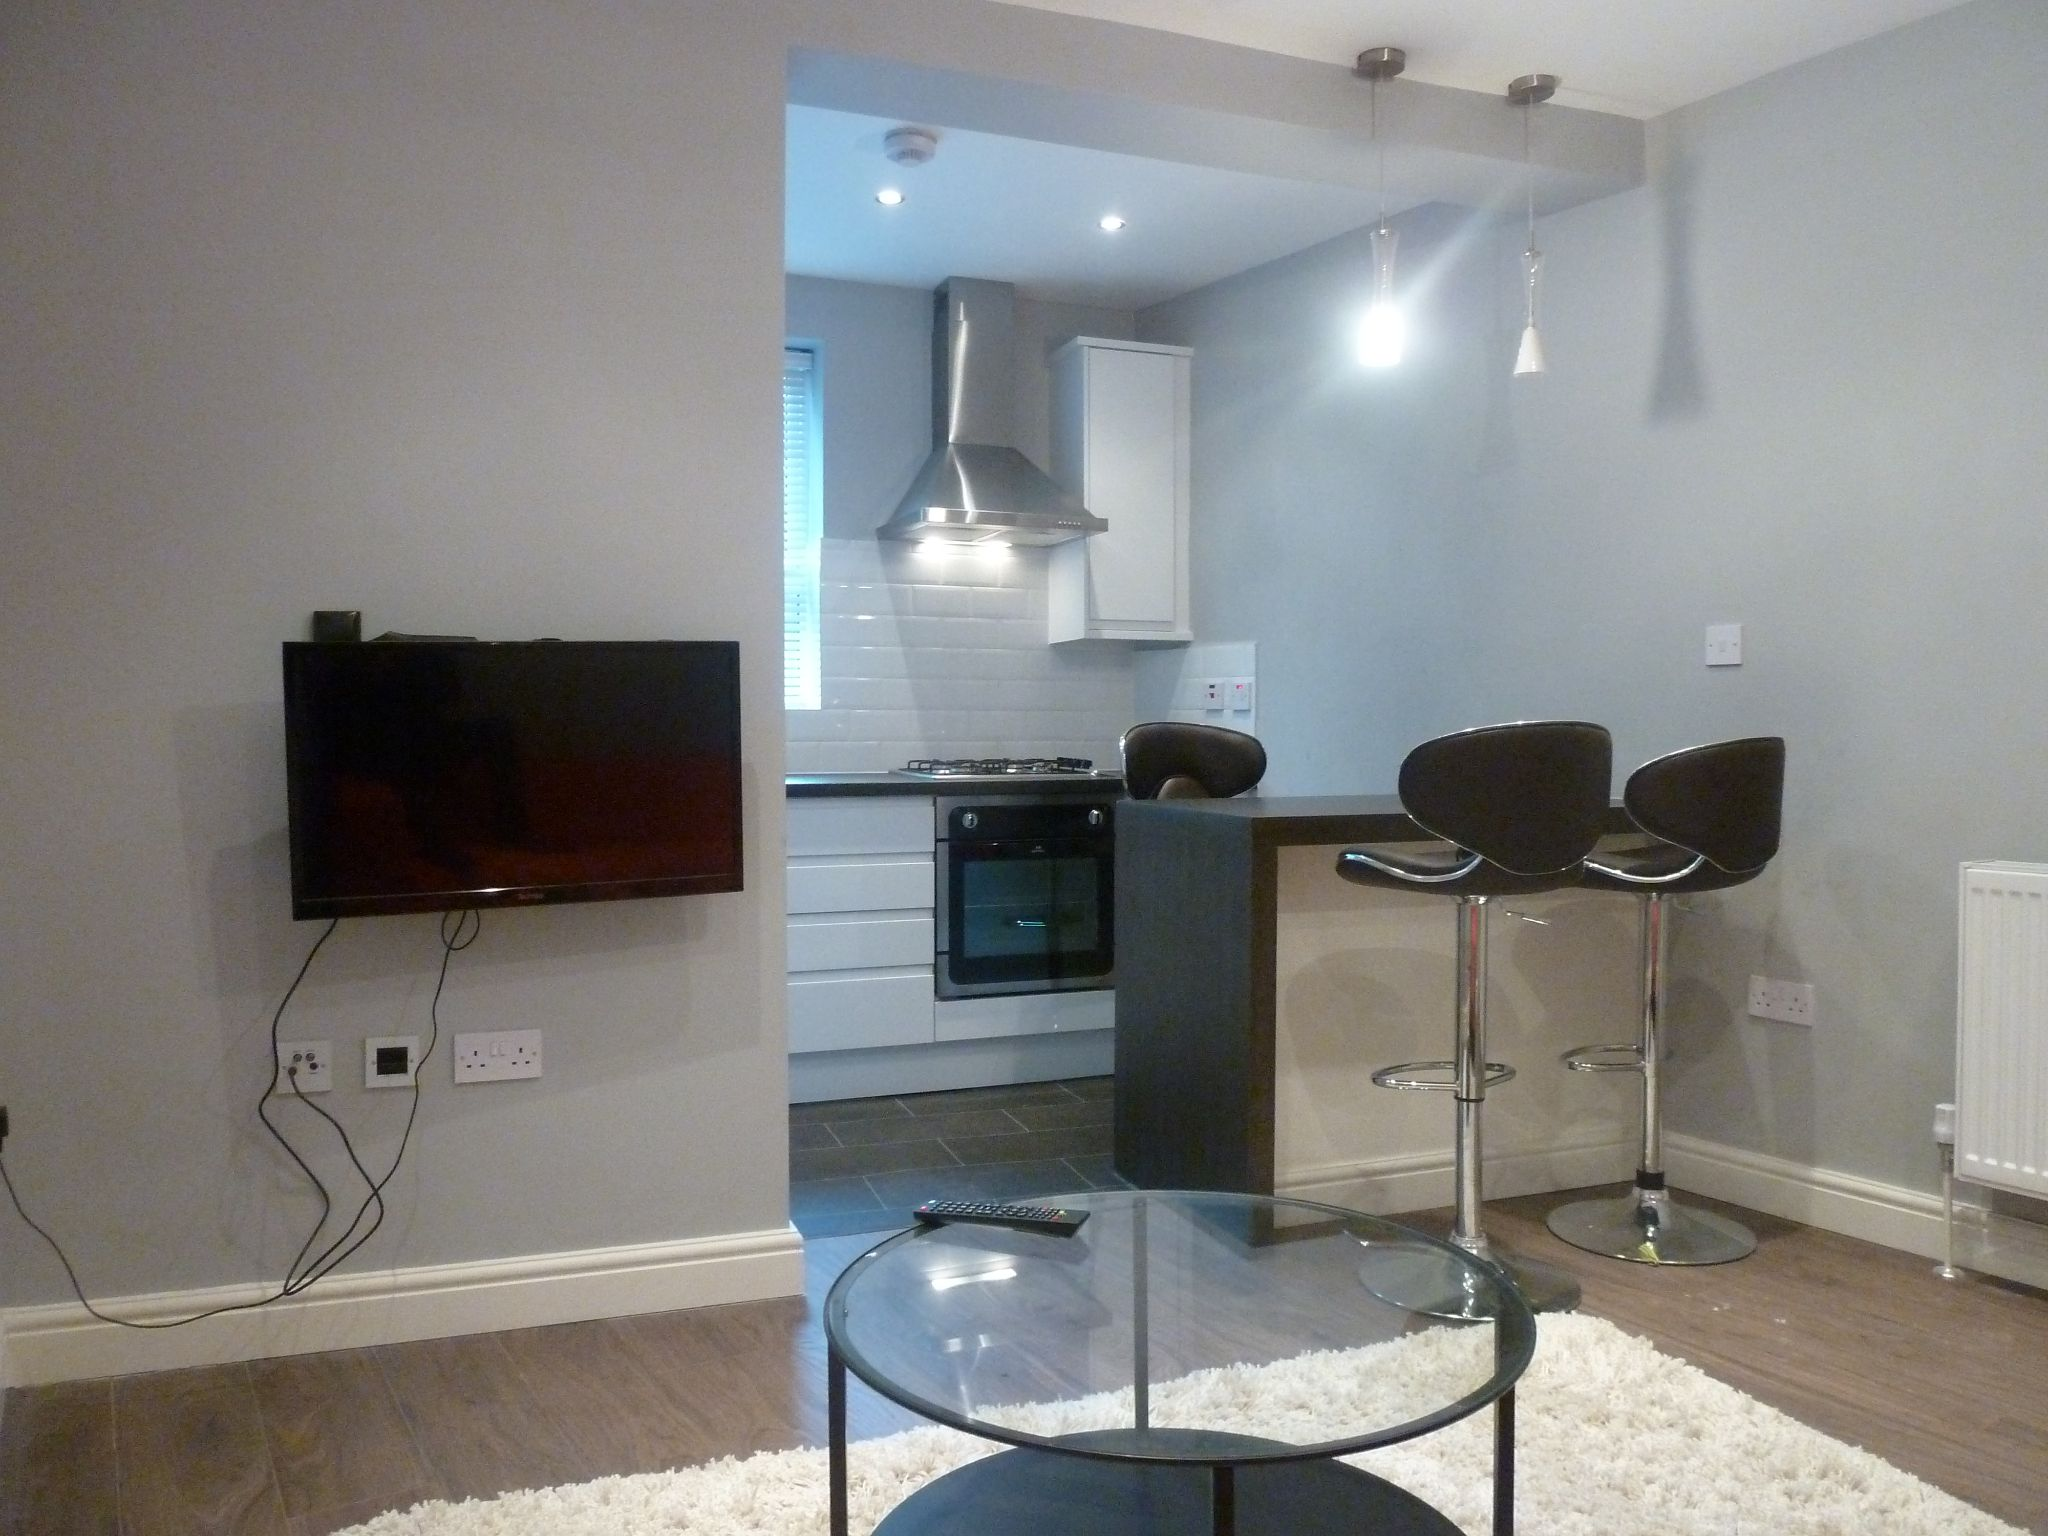 1 bedroom flat flat/apartment To Let in Brent - Open plan kitchen/living room